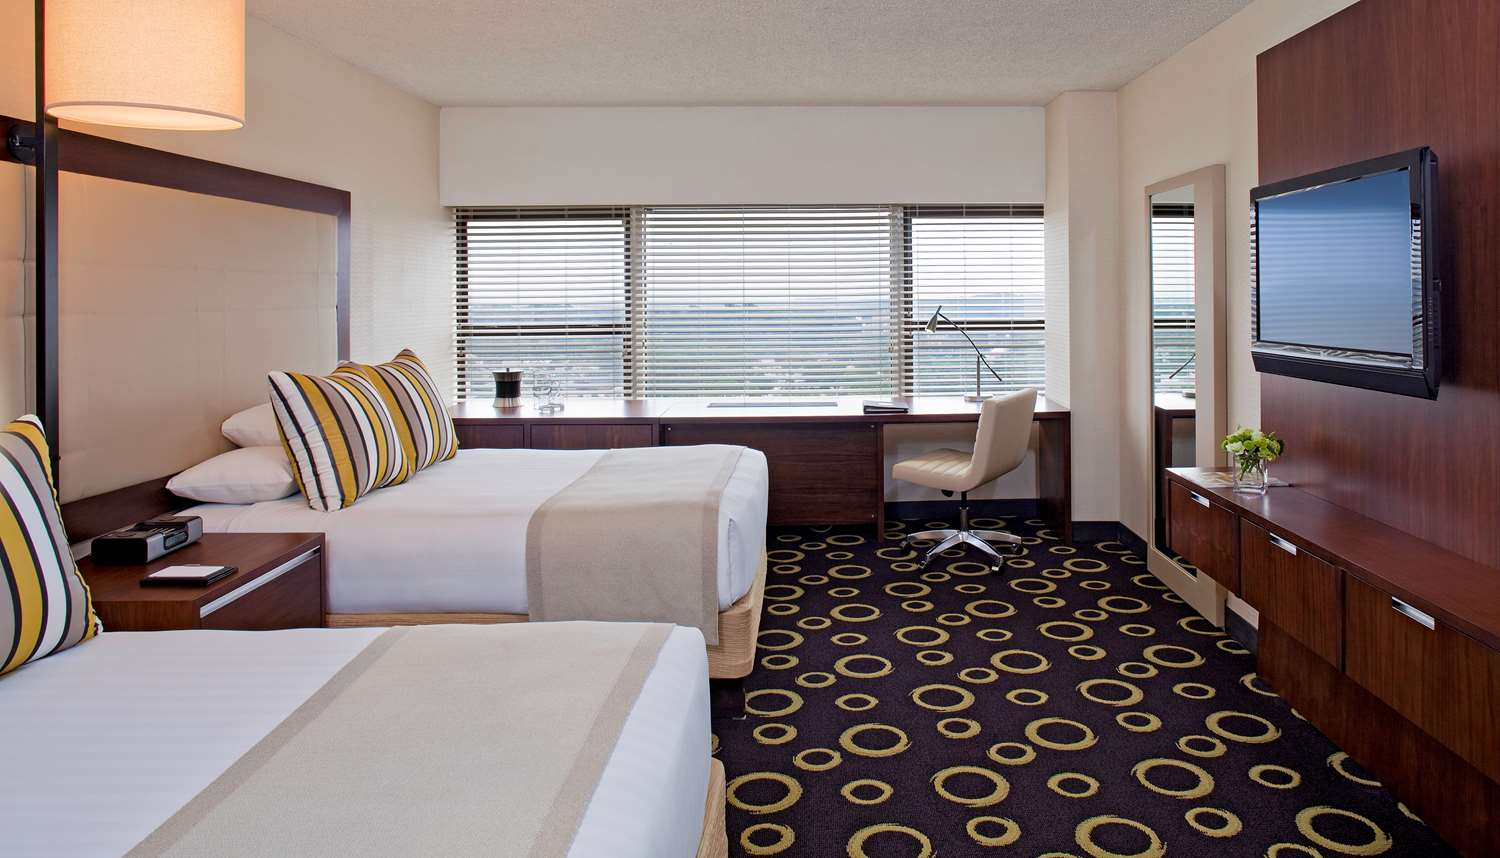 Room - Hyatt Regency Hotel Headquarters Plaza Morristown